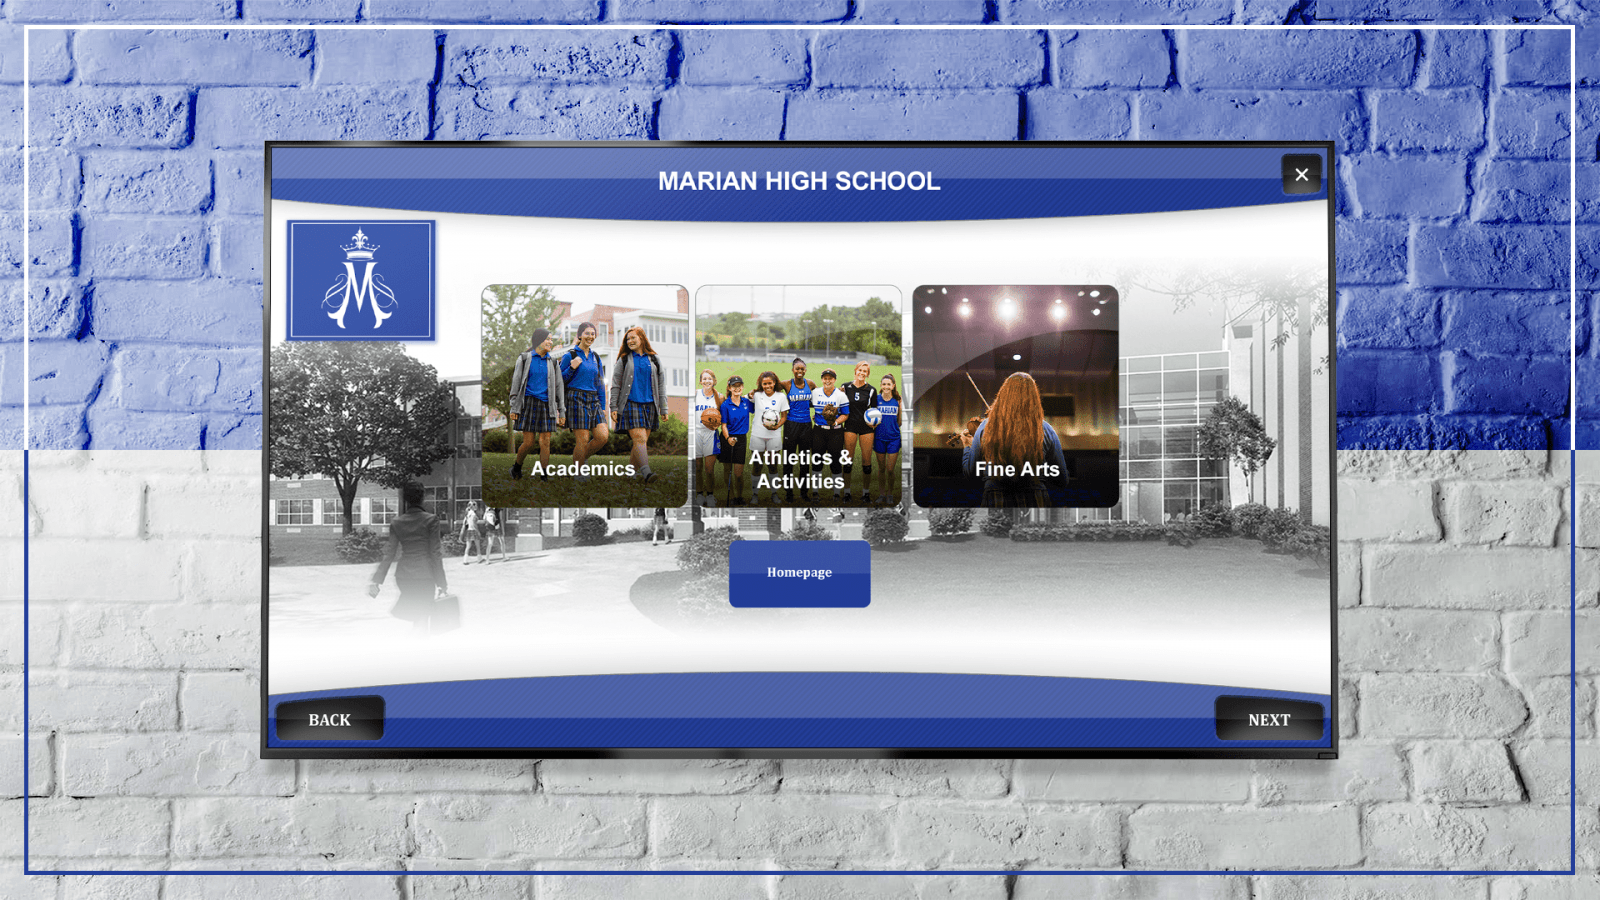 Marian High School's Digital Trophy Case allows visitors, students, and alumni to explore the school's activities and more.